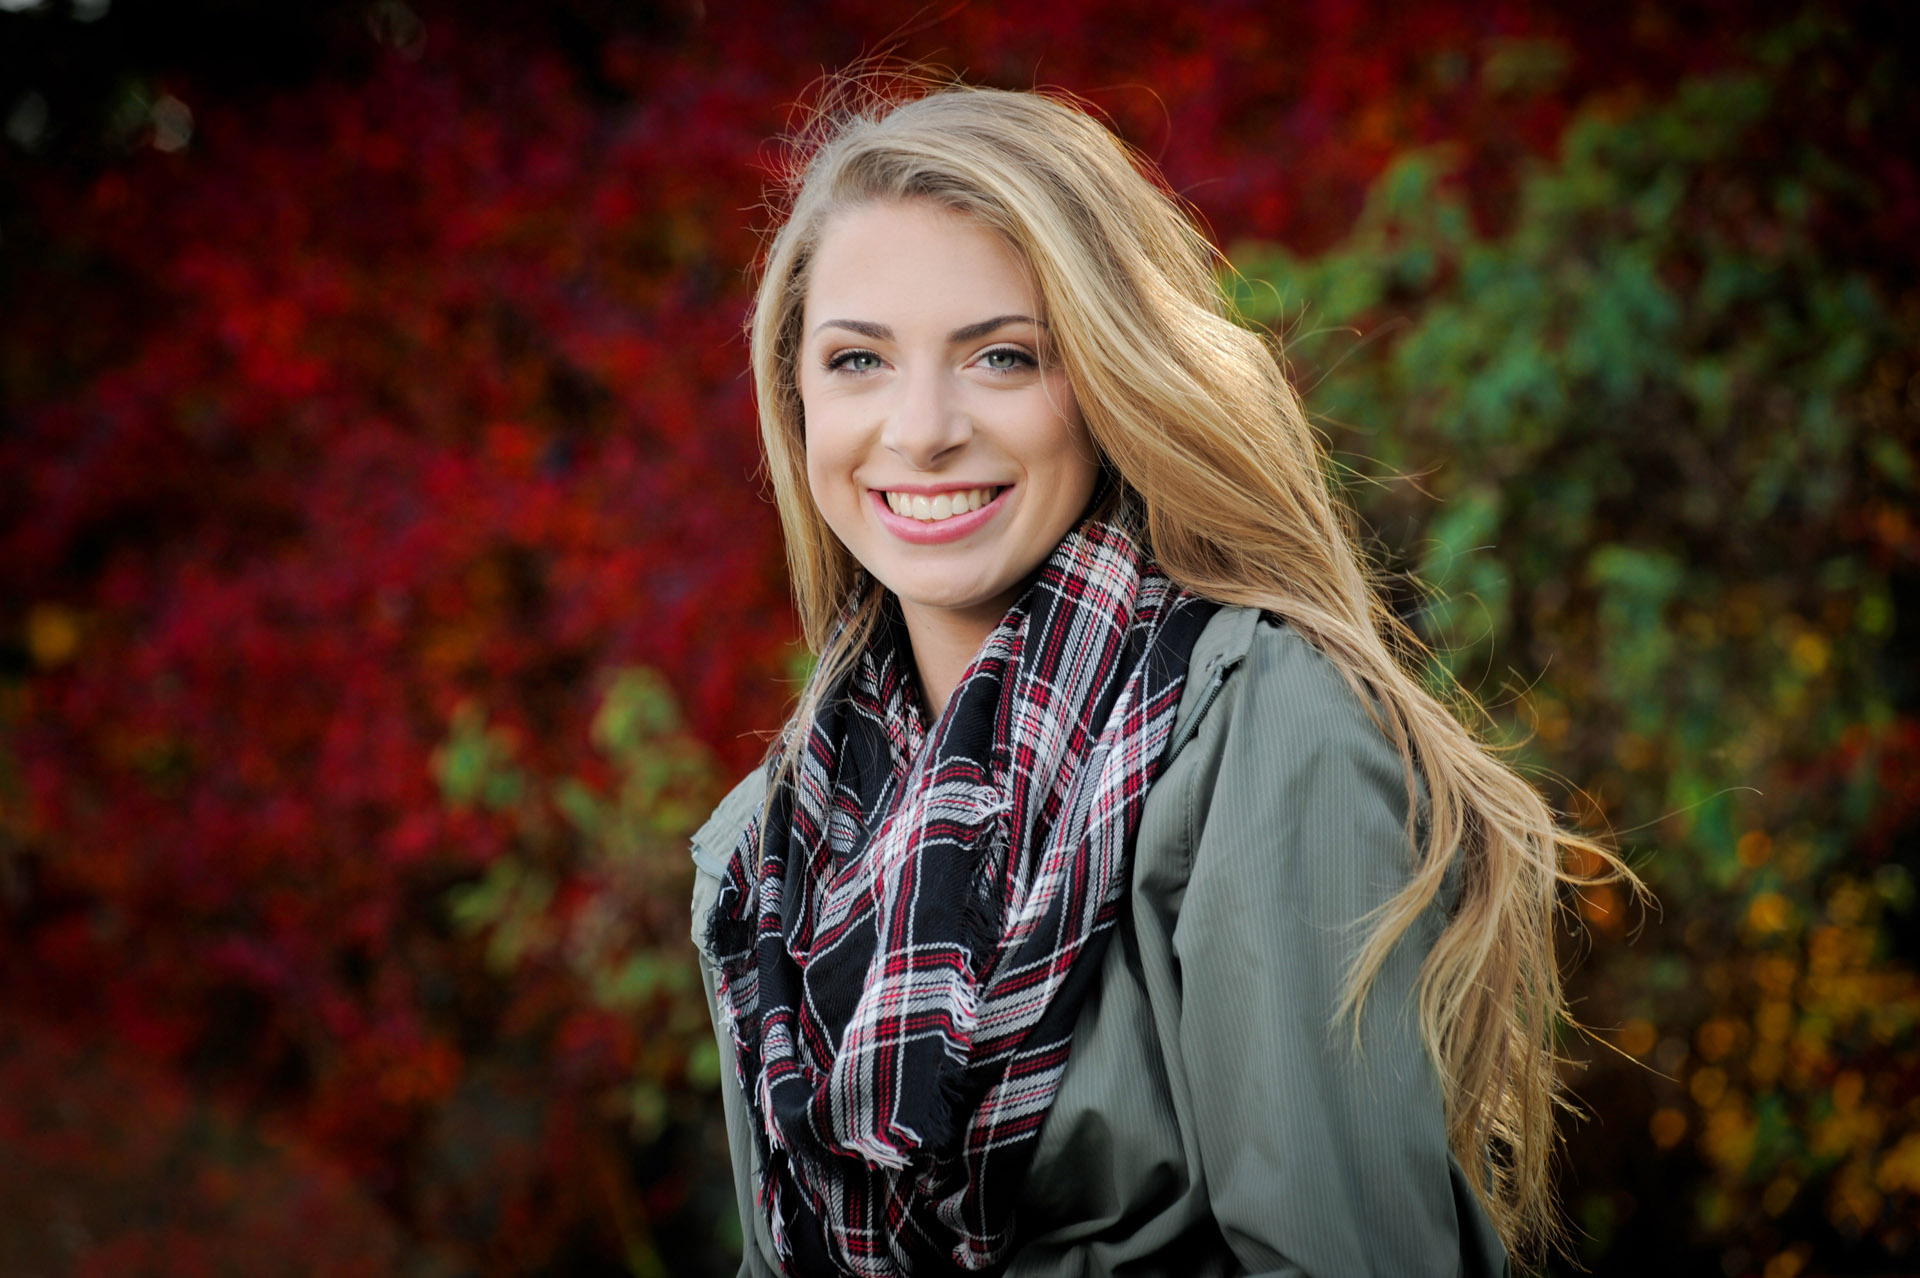 Troy, Michigan senior photographer's photo taken as the high school senior gets her senior pictures in Troy, Michigan during the peak of fall colors